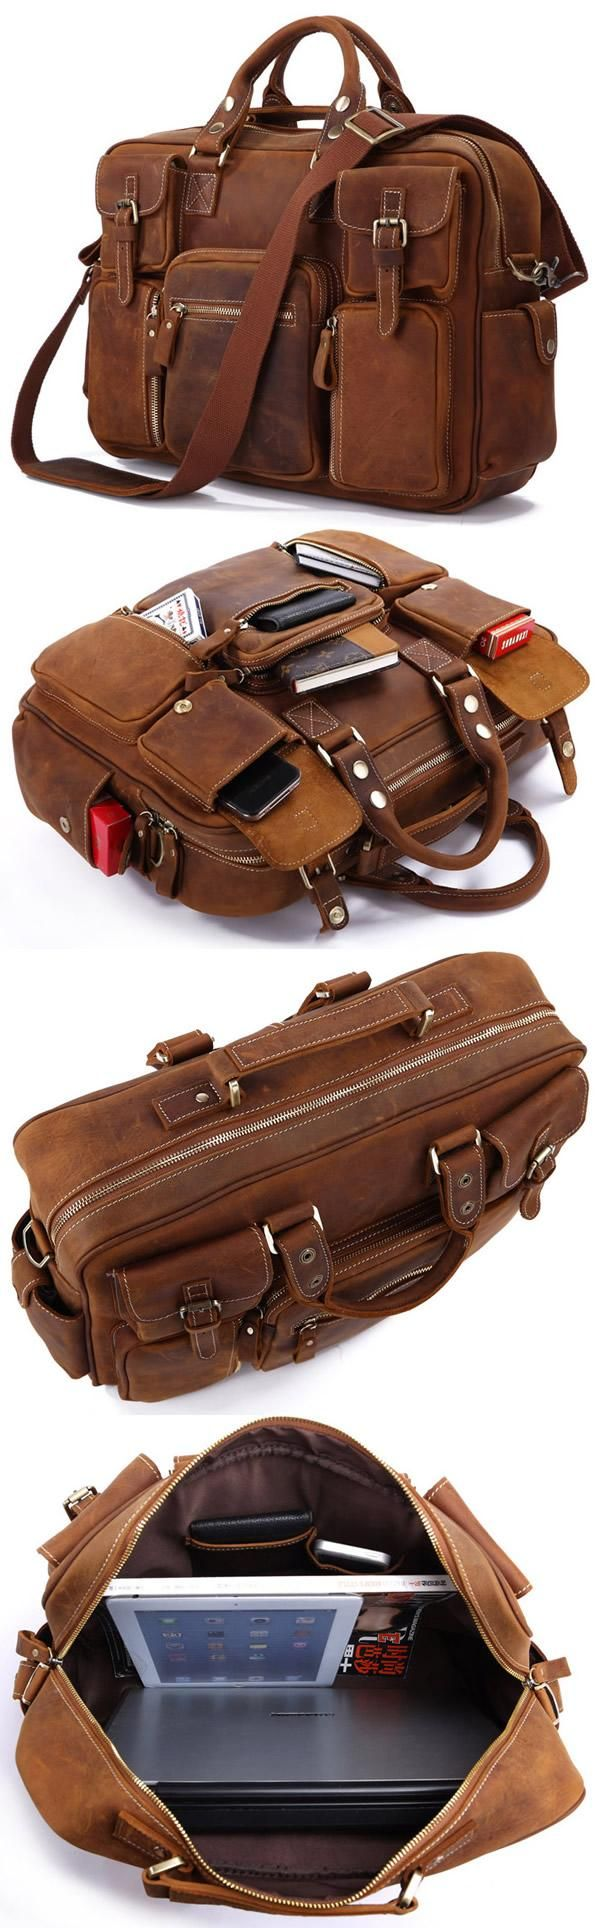 Large Handmade Vintage Leather Travel Bag / Leather Messenger Bag / Overnight Bag / Duffle Bag / Weekend Bag - n62-4 - Thumbnail 4